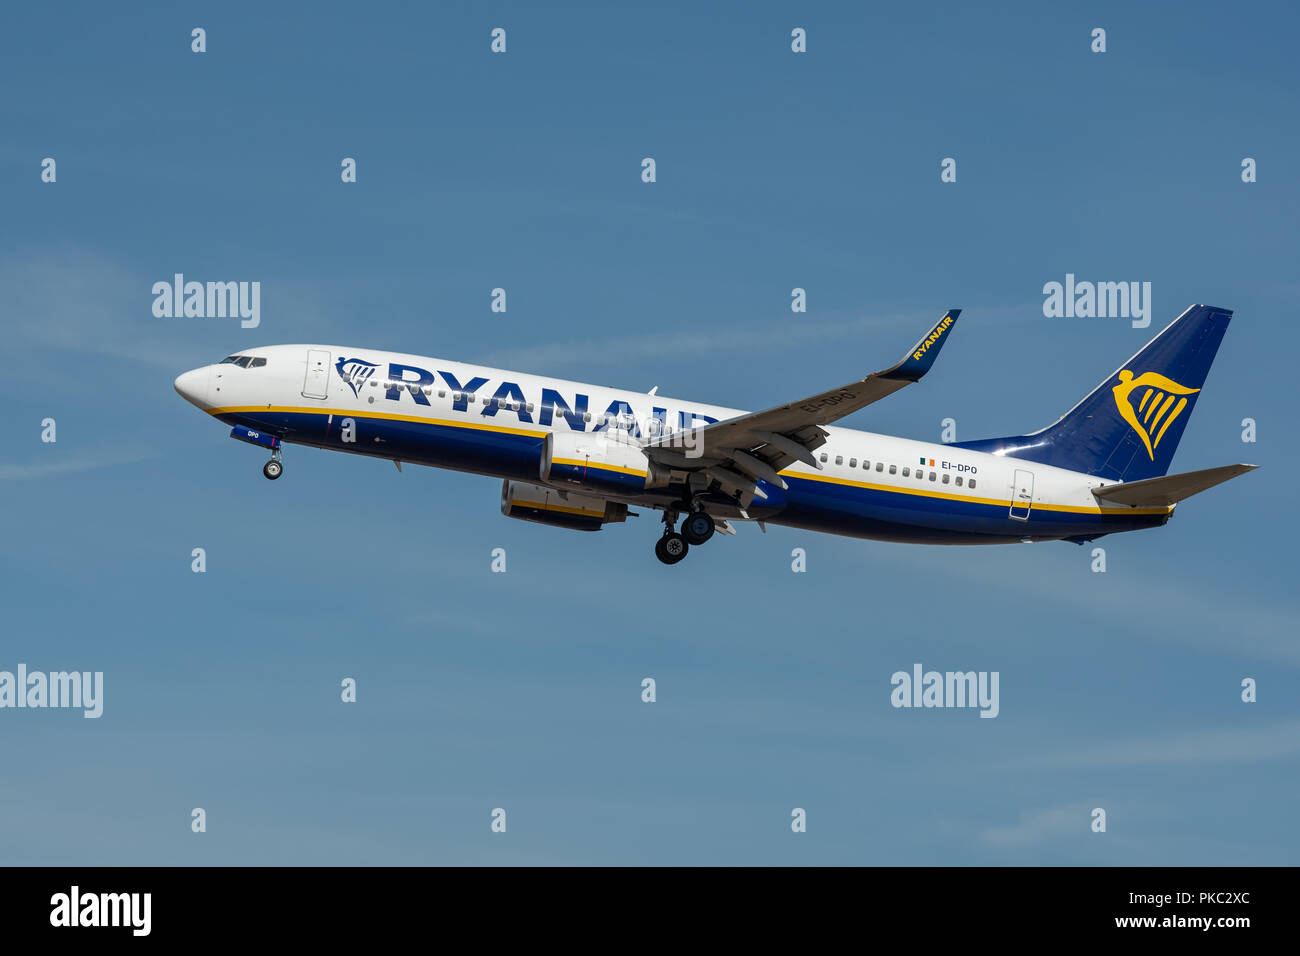 11 September 2018, Hessen, Frankfurt/Main: An Irish airline Ryanair aircraft approaches Frankfurt Airport. Verdi and the pilot union Vereinigung Cockpit (VC) call for a full-day strike at Ryanair in Germany. Pilots and flight attendants demand better working conditions and better pay. Photo: Silas Stein/dpa - Stock Image